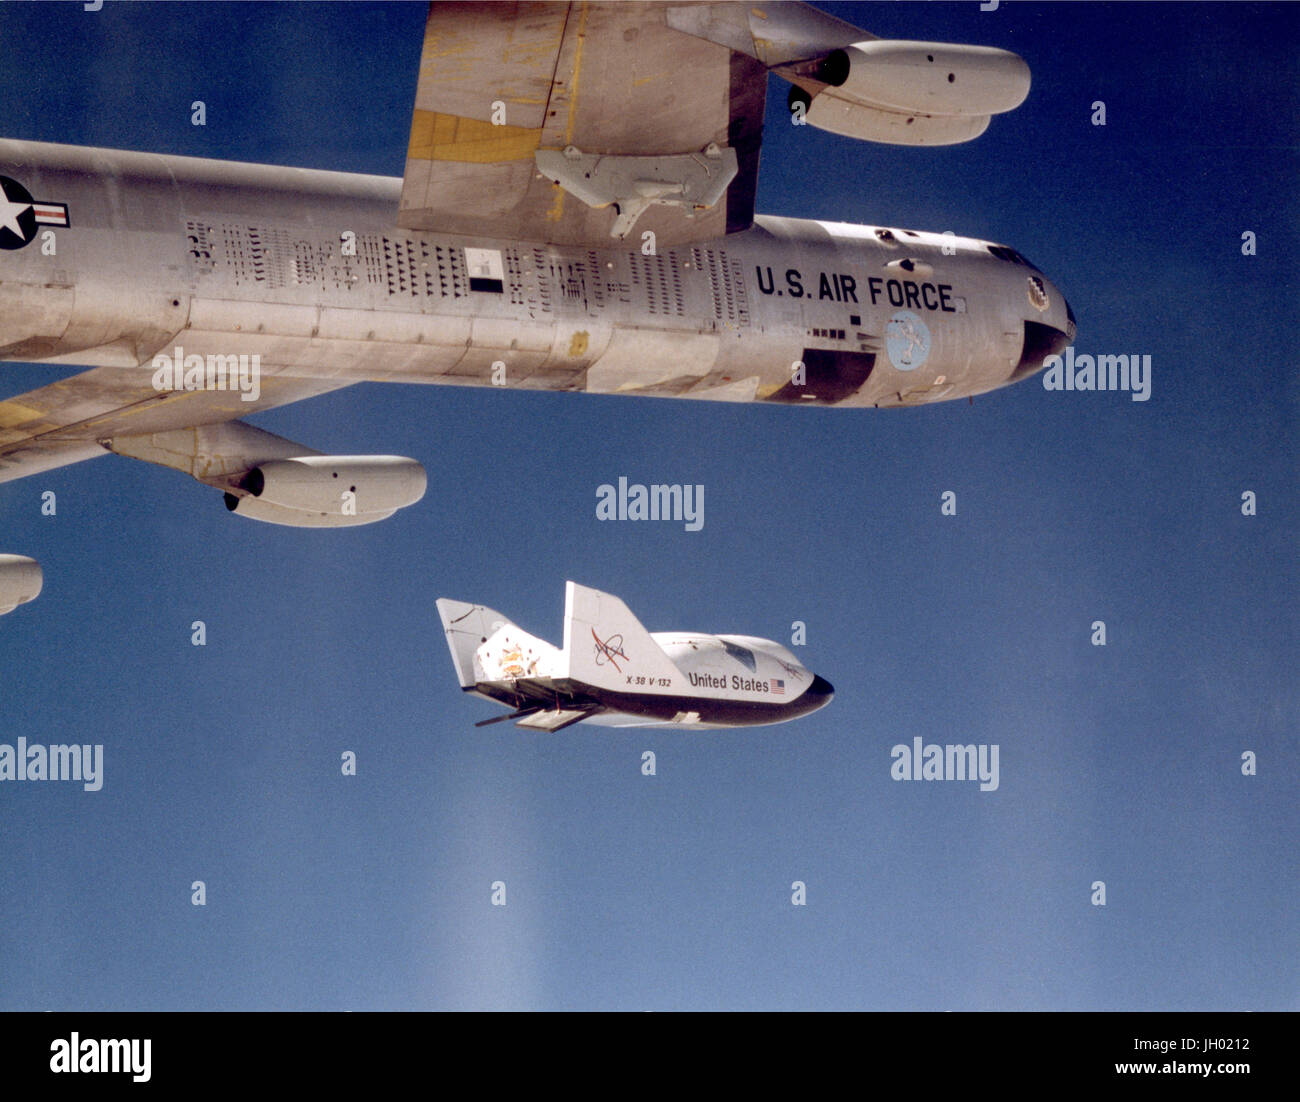 The X-38 research vehicle drops away from NASA's B-52 mothership immediately after being released from the B - Stock Image